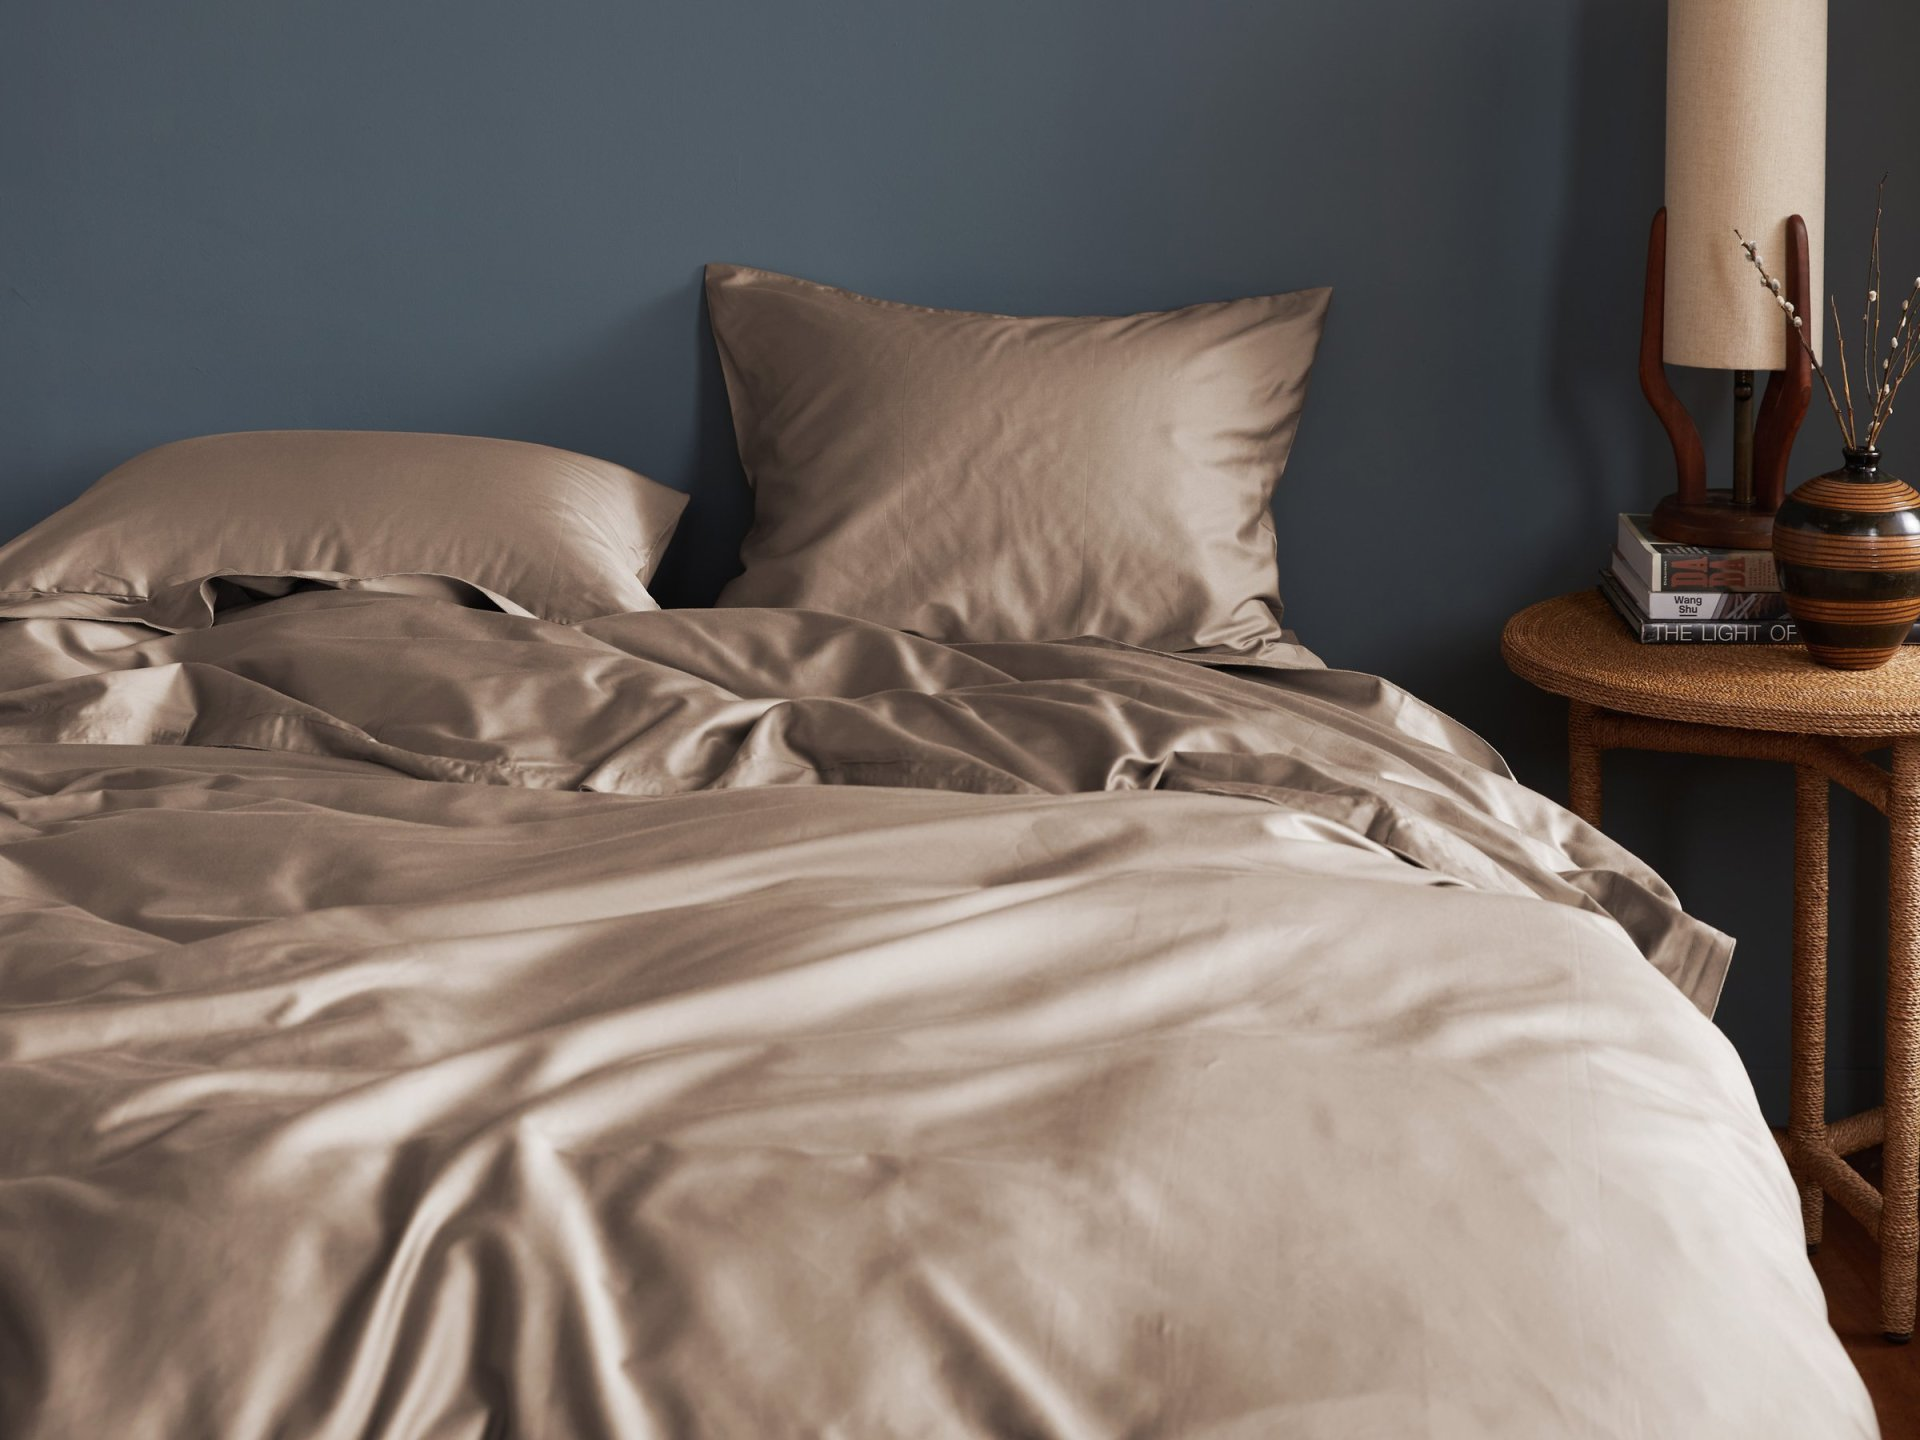 sateen duvet cover in the color fawn